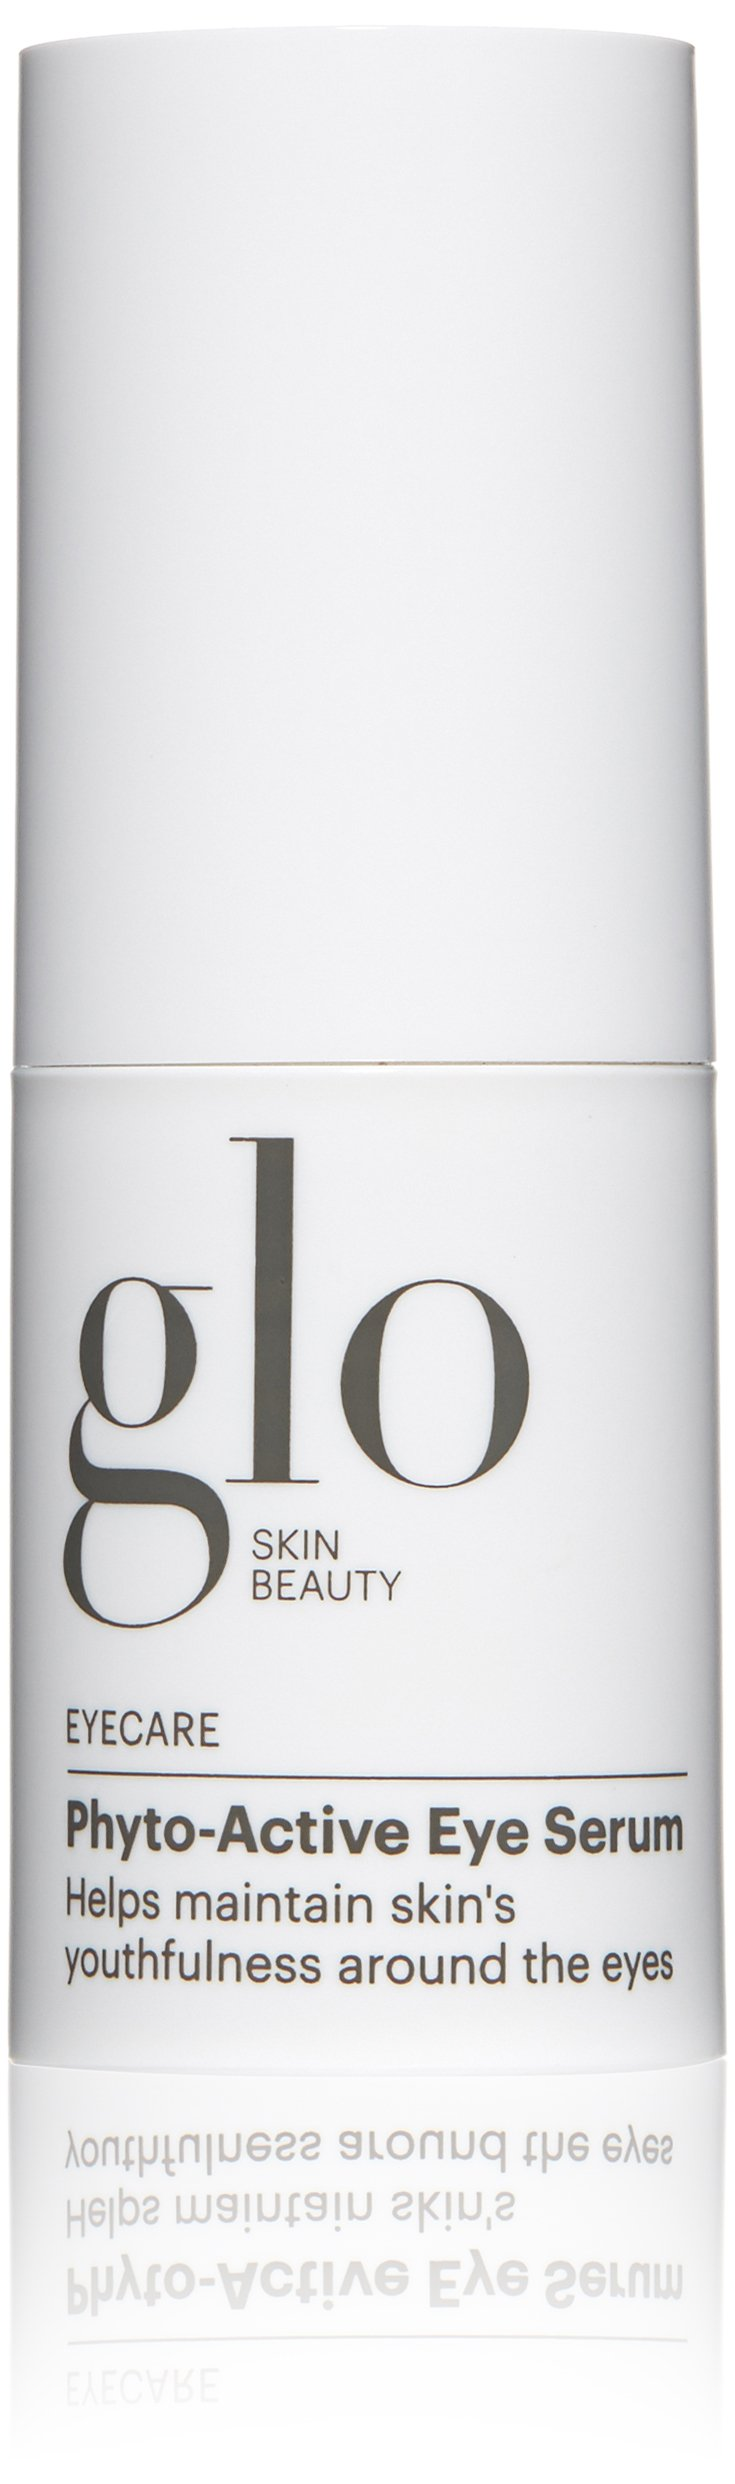 Glo Skin Beauty Phyto-Active Eye Serum | Anti-Aging Firming Eye Treatment | Treat Wrinkles and Fine Lines